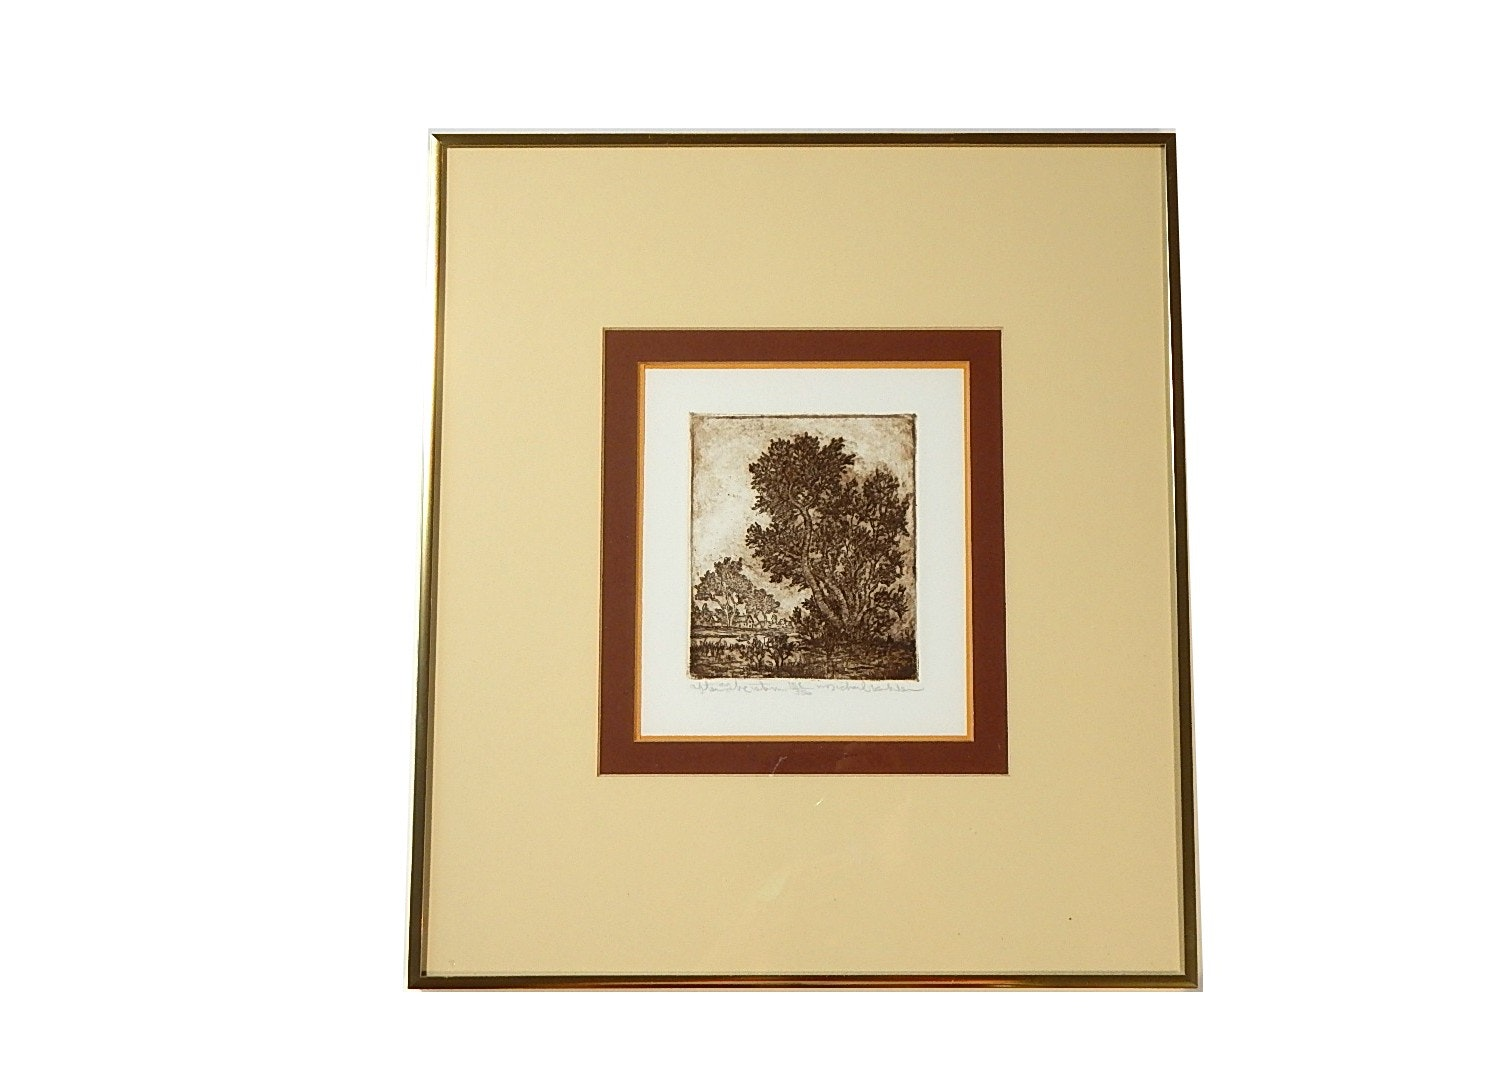 """Michael Kohler Limited Edition Etching """"After the Storm"""""""